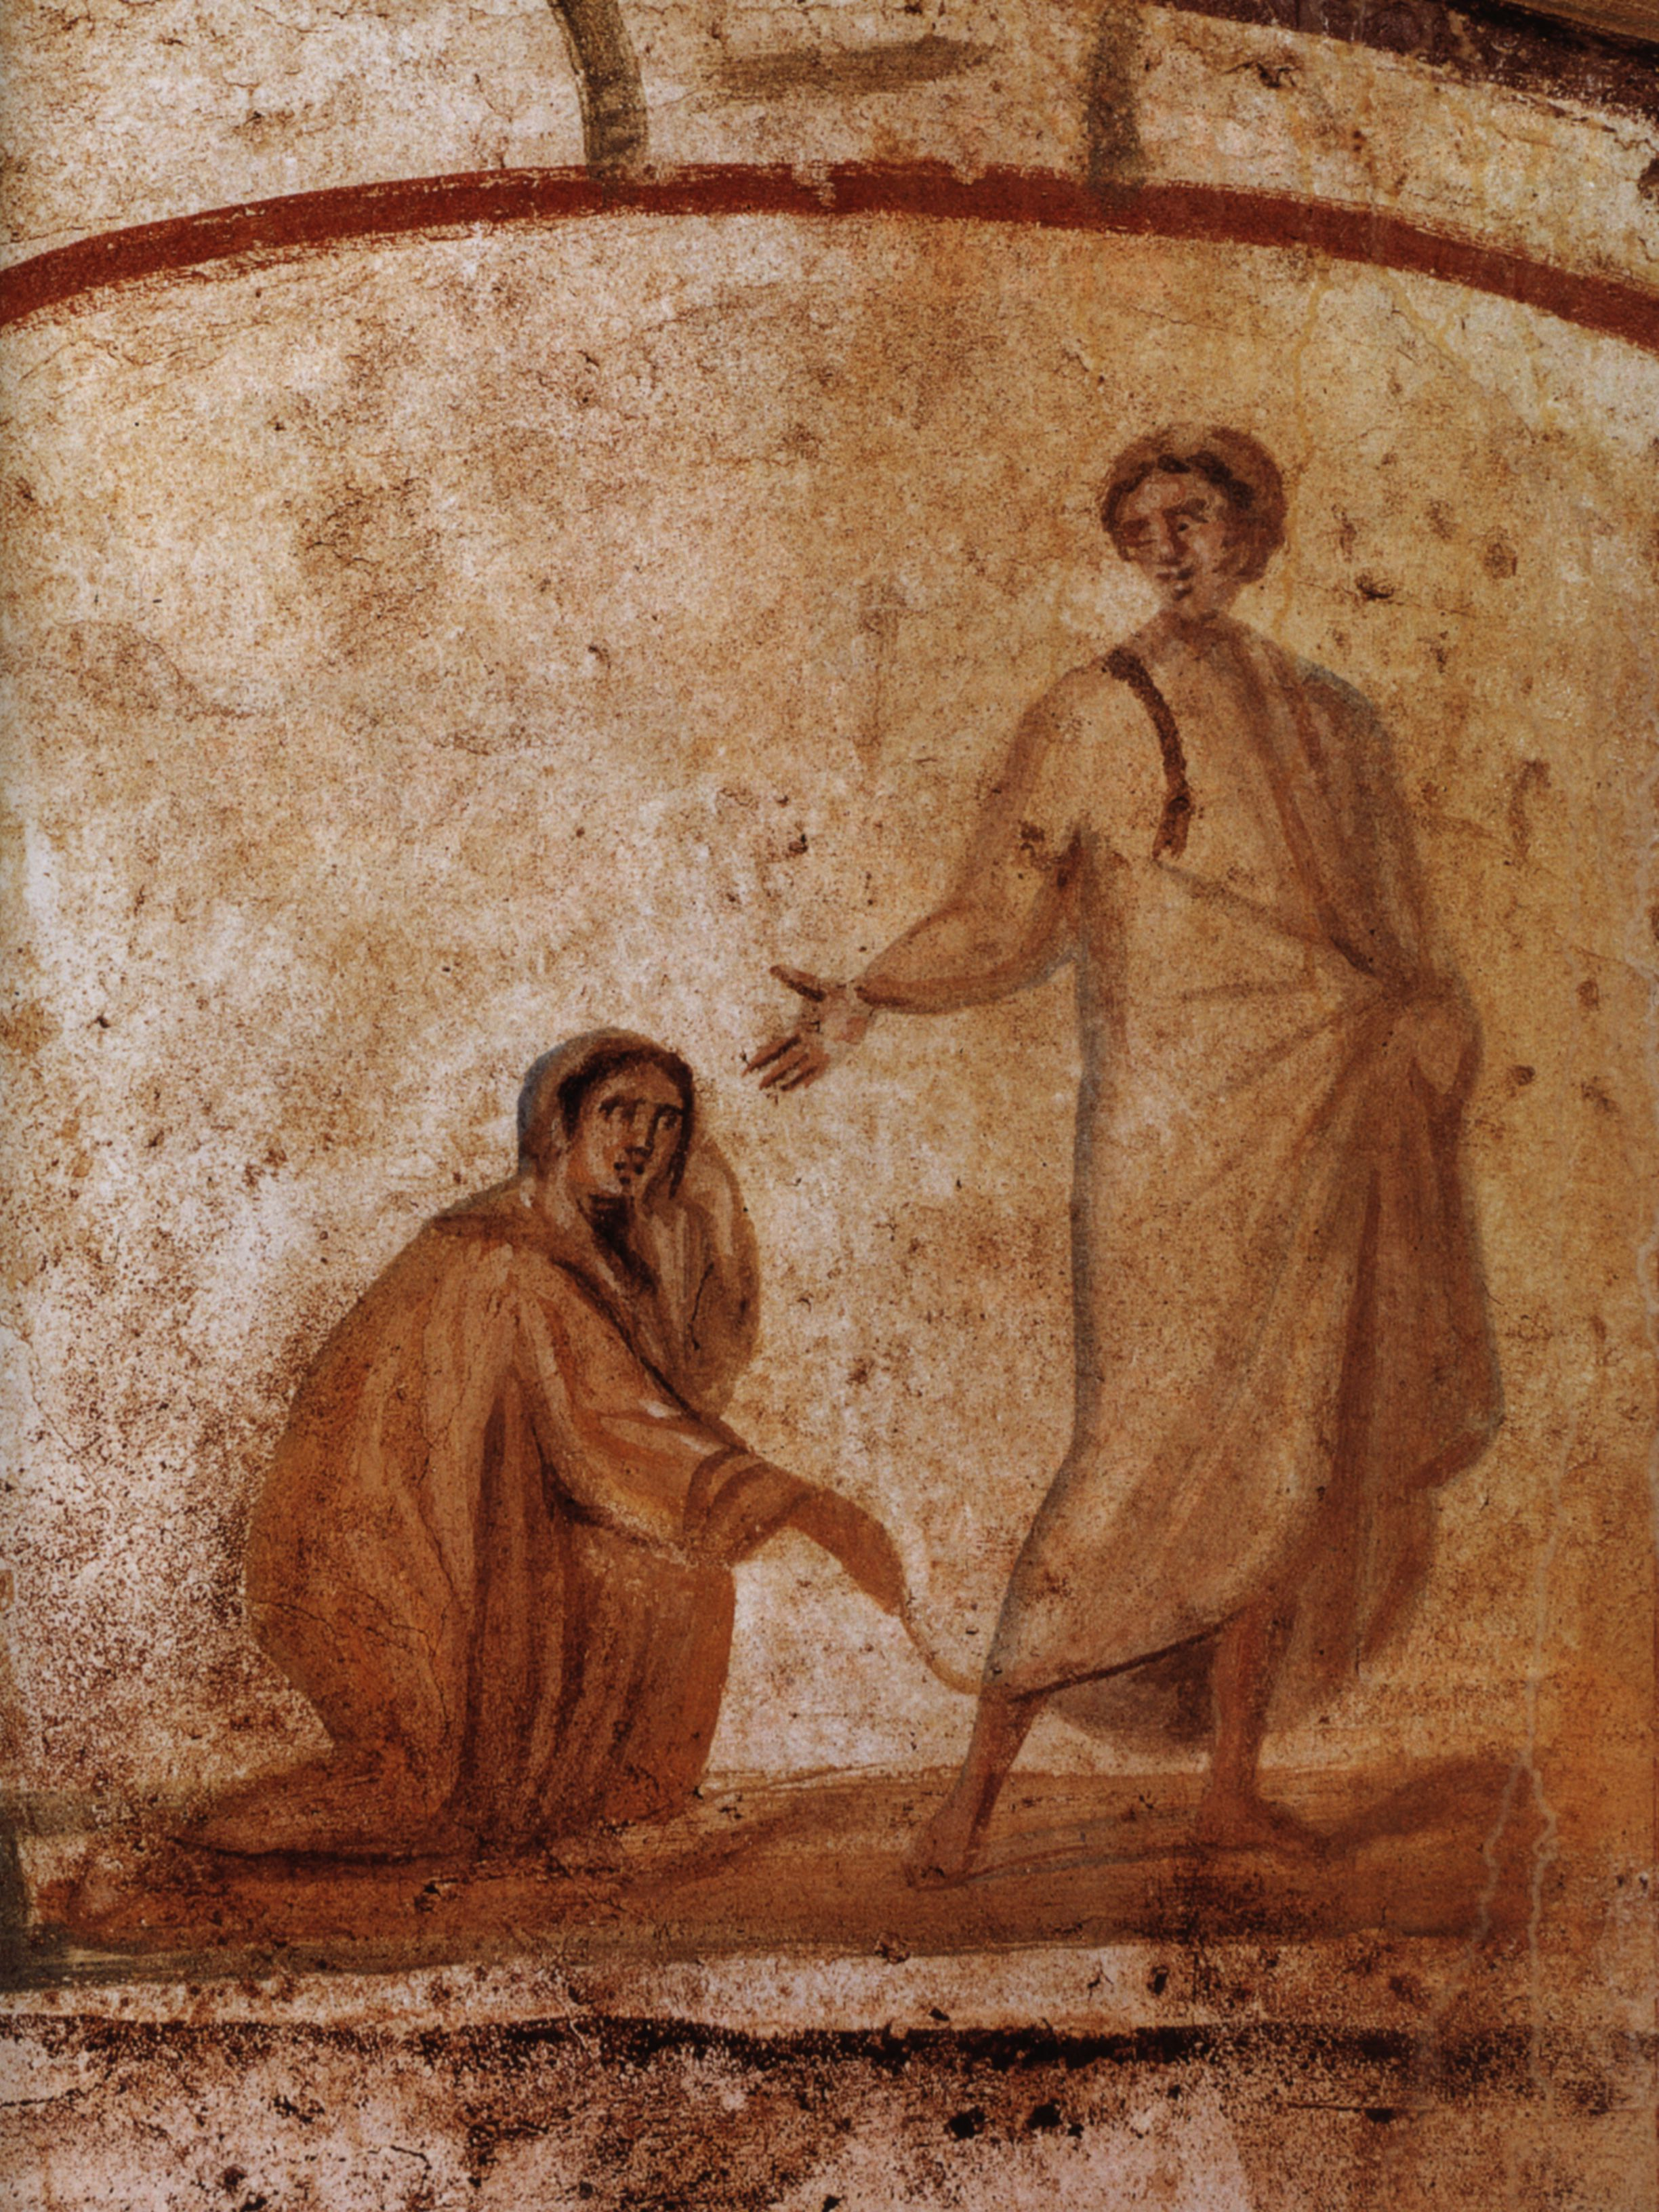 Healing of the Bleeding Woman, Catacombs of Rome, 4th Century AD